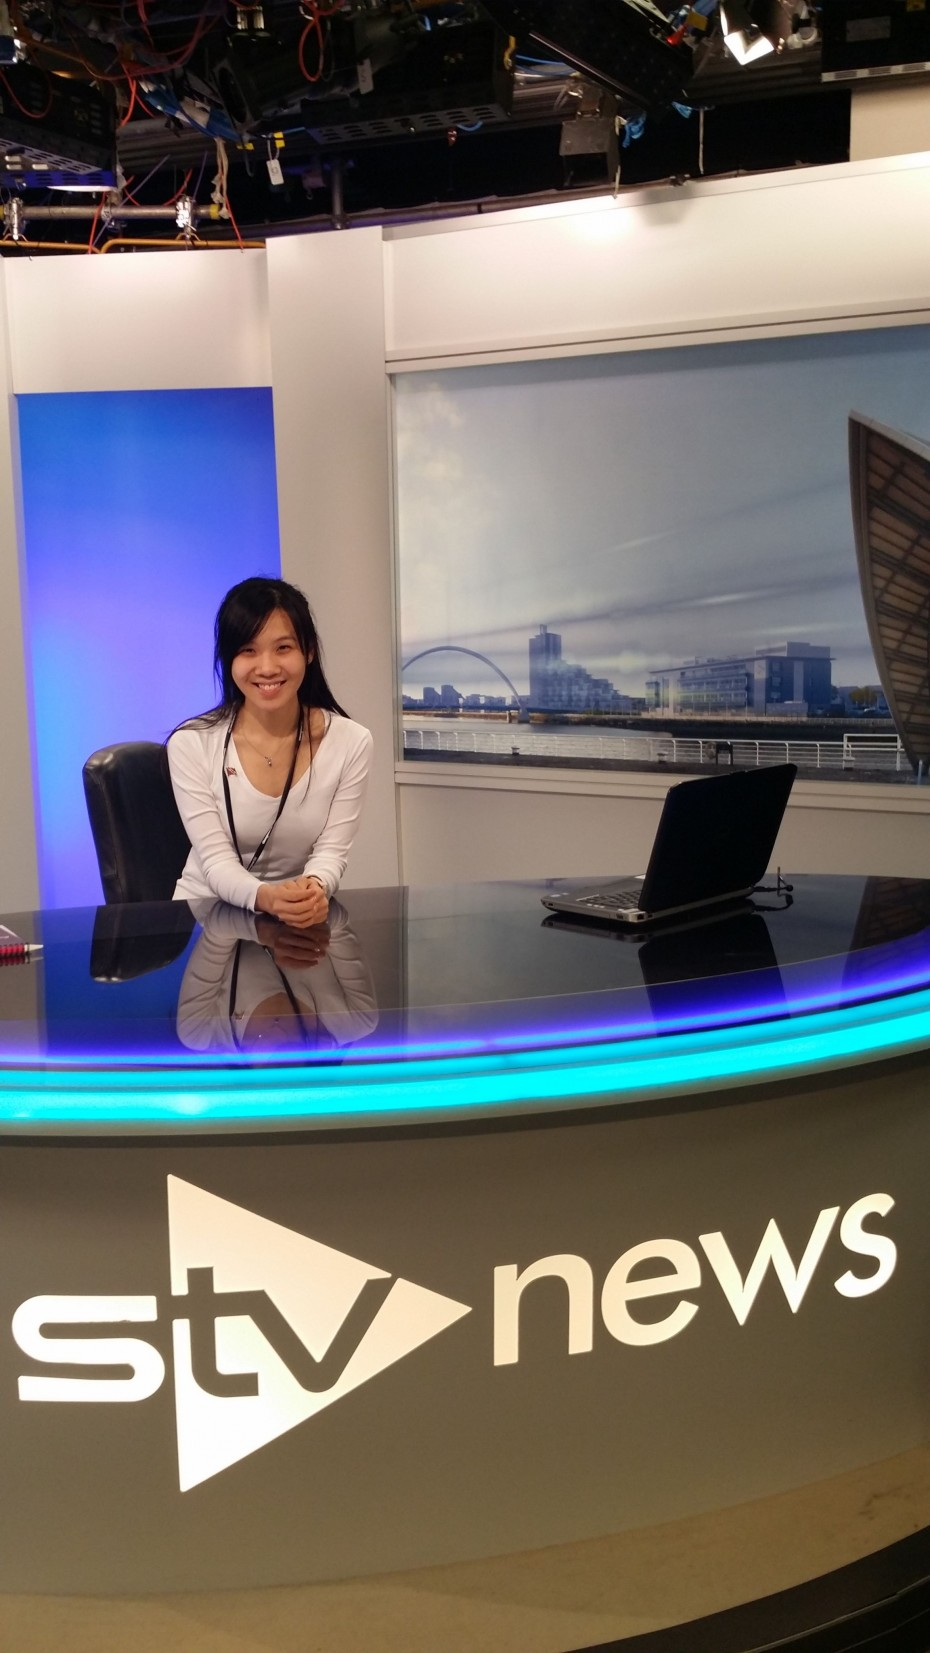 A BRATs exclusive: BRATs journalist Carissa Tan was sent to Glasgow, Scotland earlier this year for the Aye! Write Future News conference. She is pictured here trying her hand at news reading at the STV News studio.